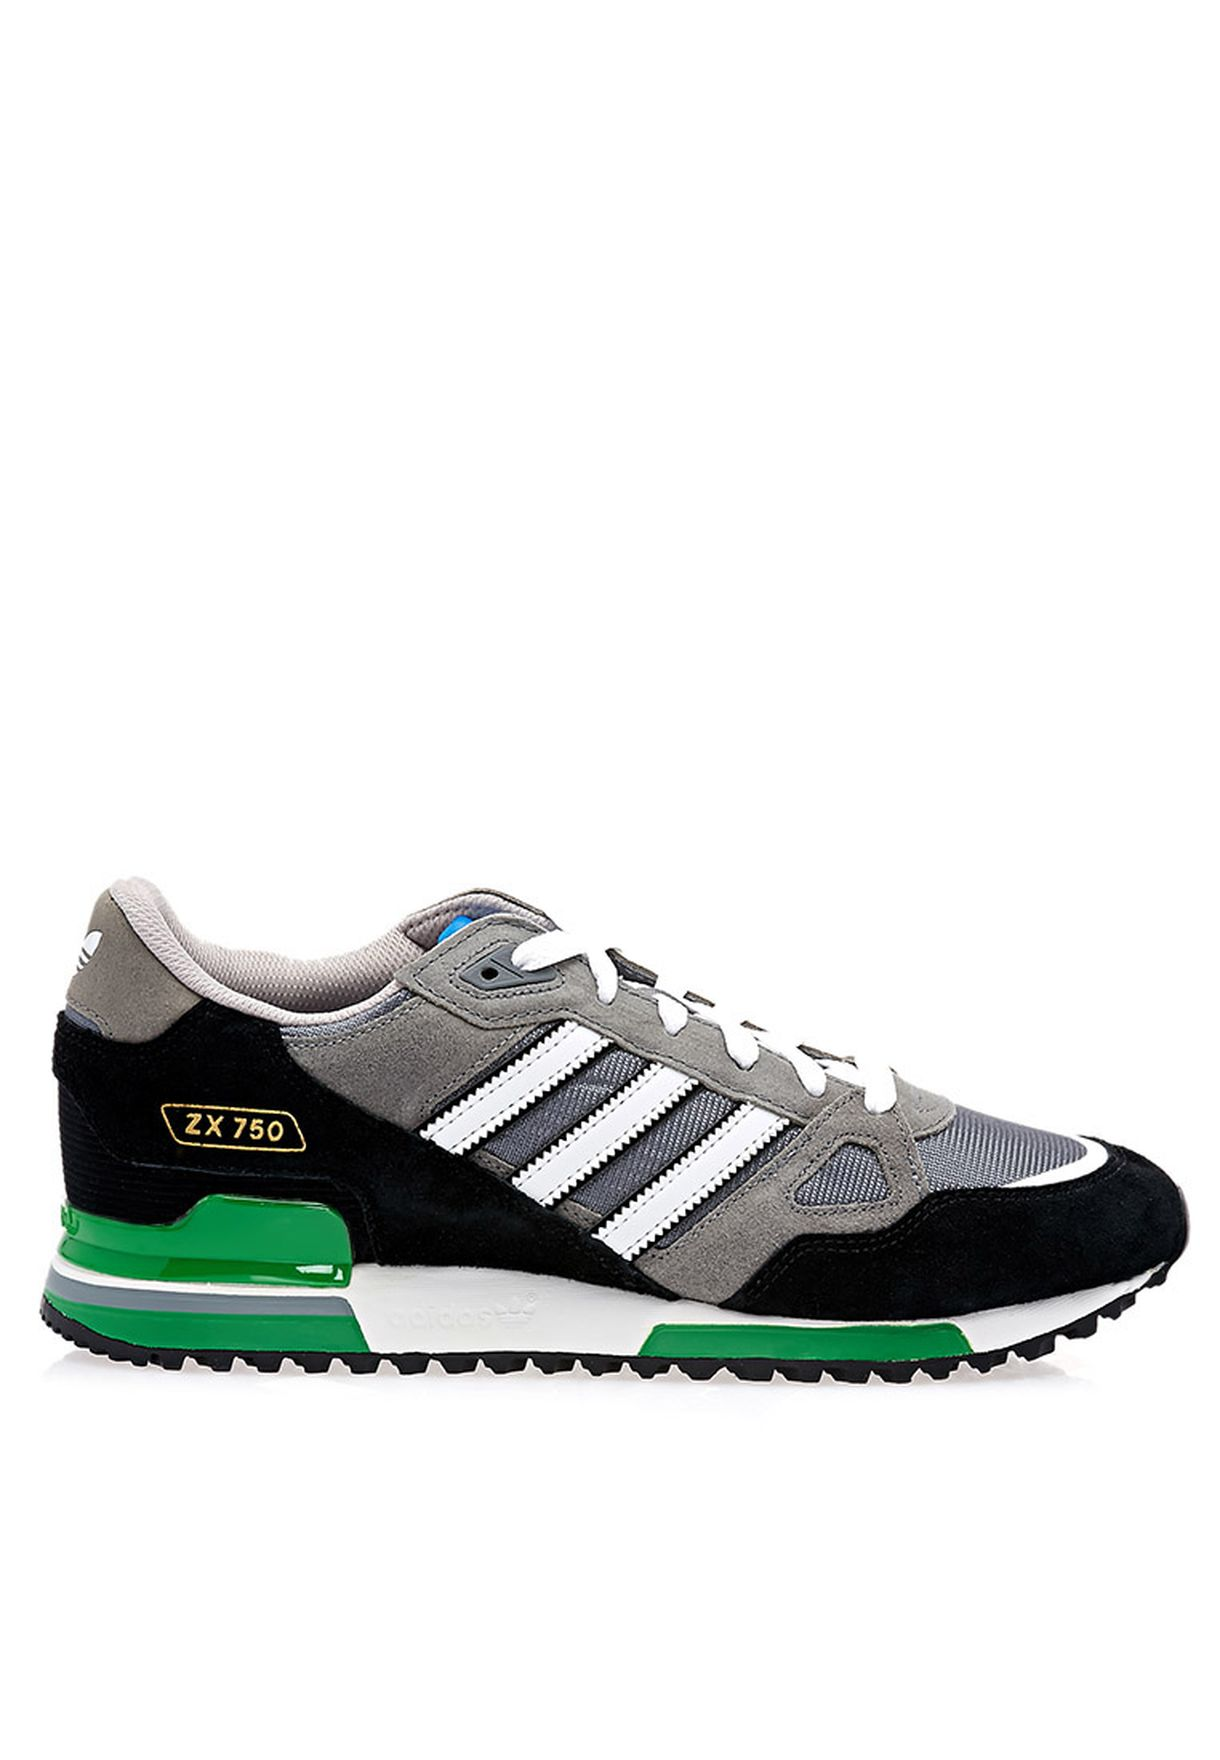 new concept 57c97 040bc coupon code for adidas zx 750 grey blue usps 4c80d 7faf8